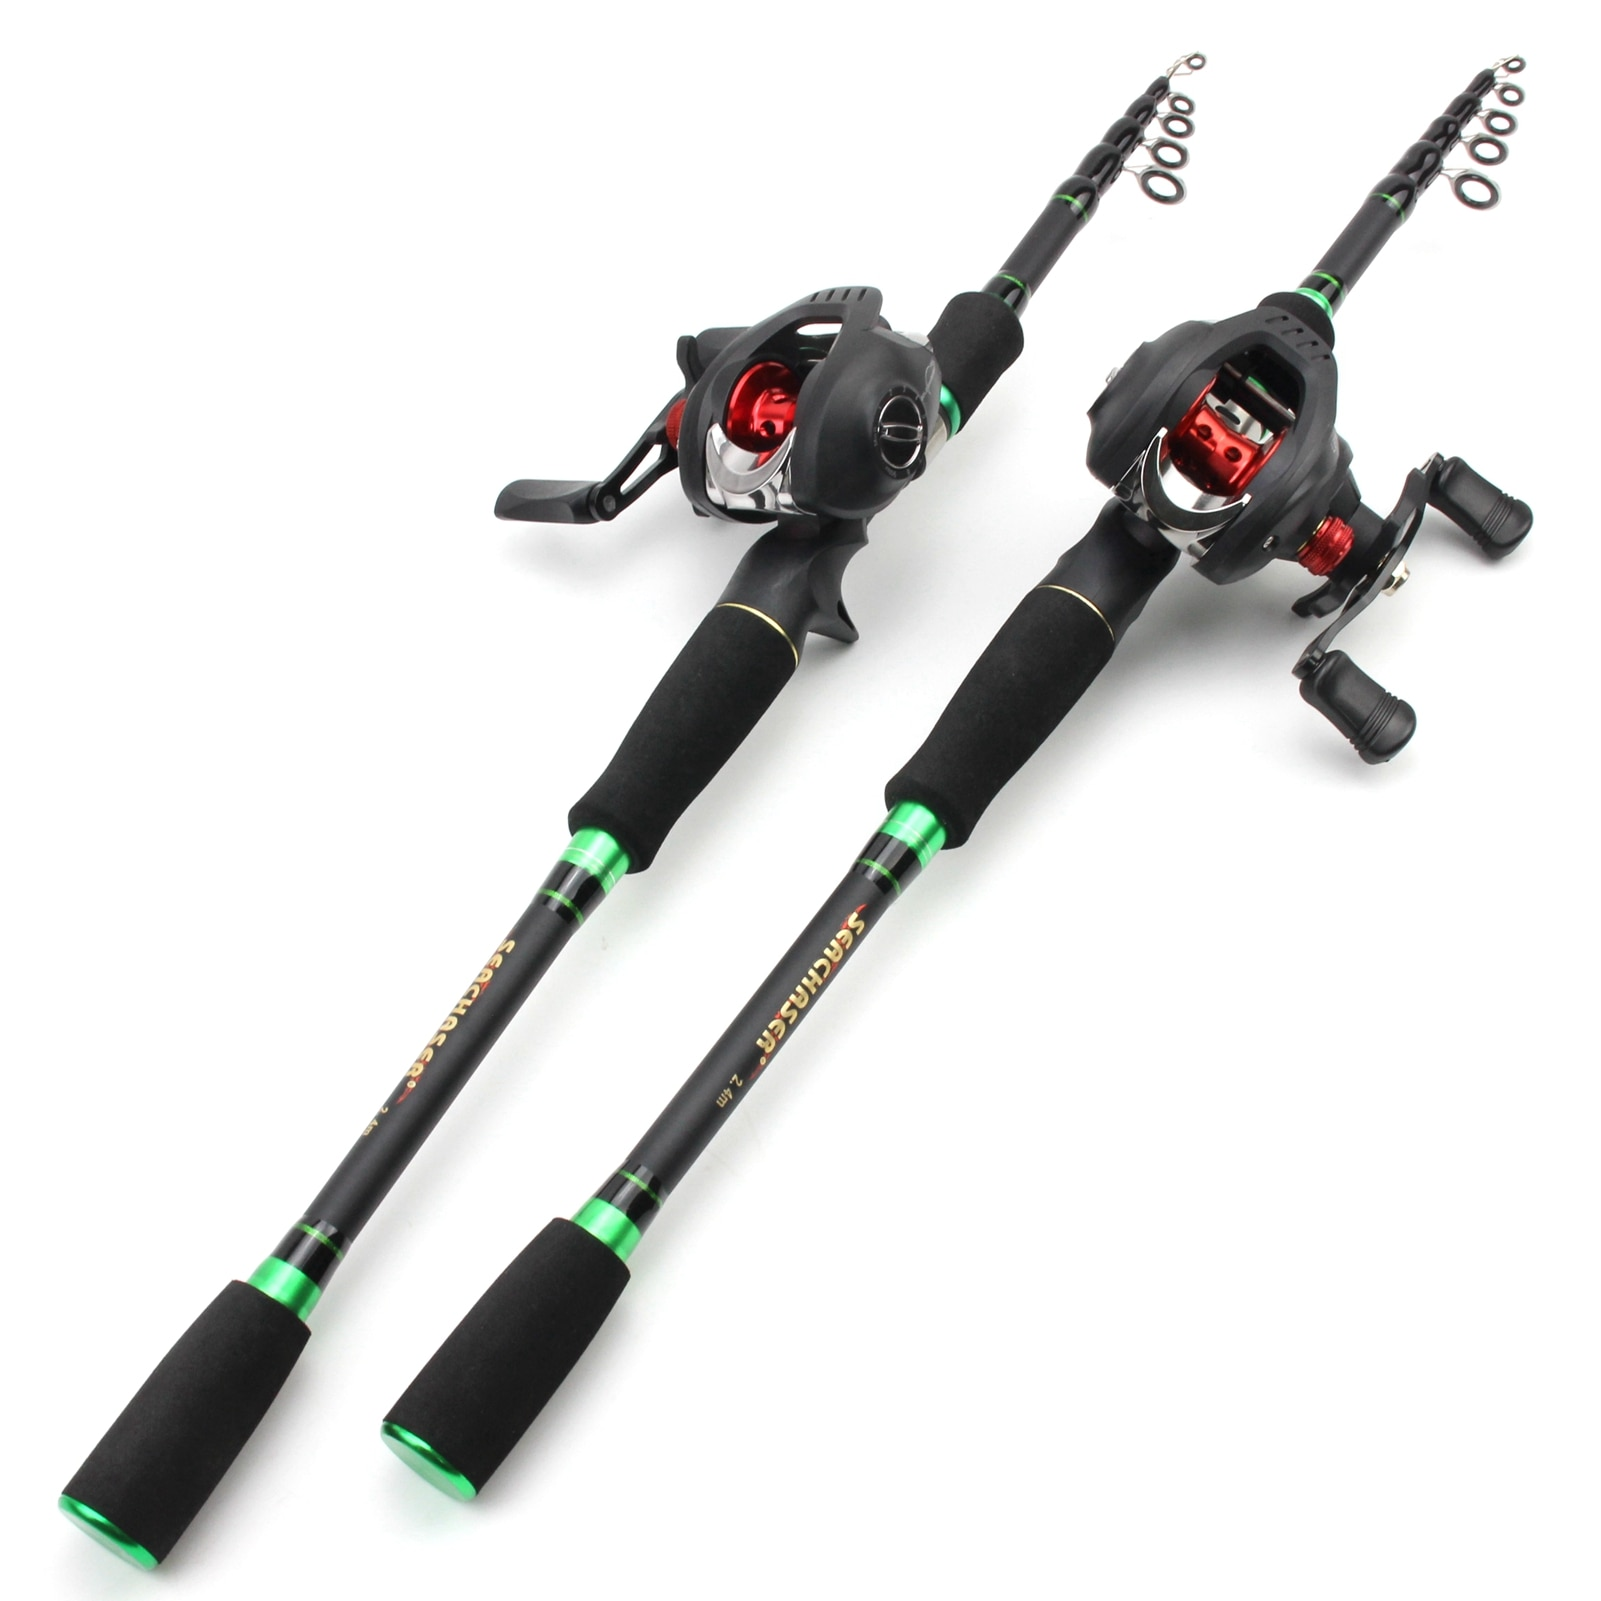 1.8M 2.1M 2.4M 2.7M Fishing rod with reel Casting Rod and Casting Reel set carbon lure  fishing rod Lure Weight 7-28g M power enlarge